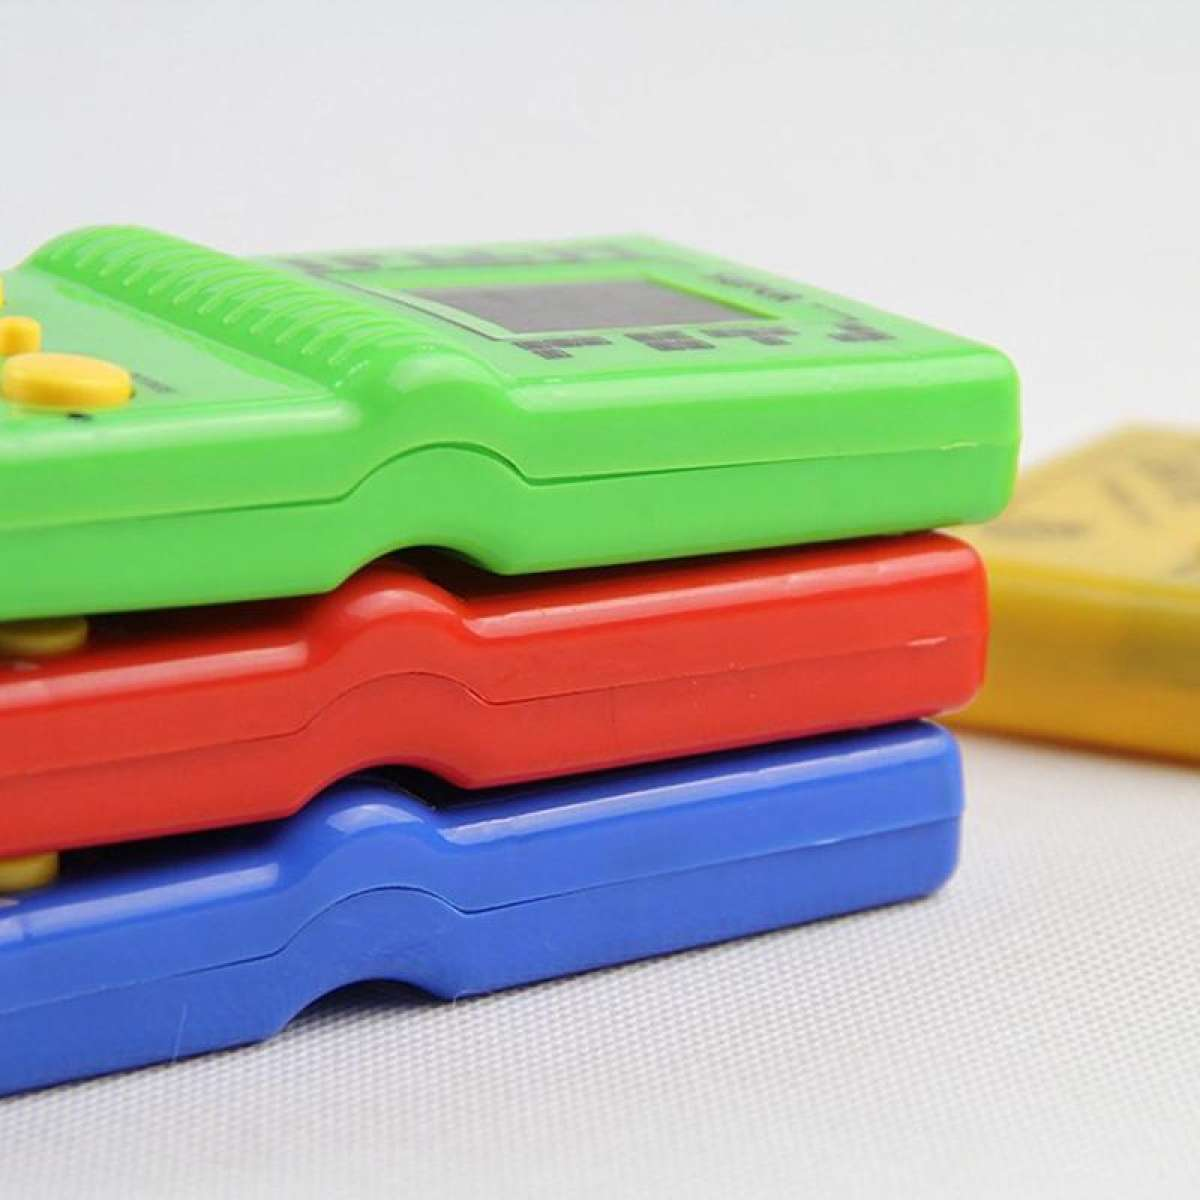 Classic Brick Game Toy For Tetris Hand Held Electronic Game Gift